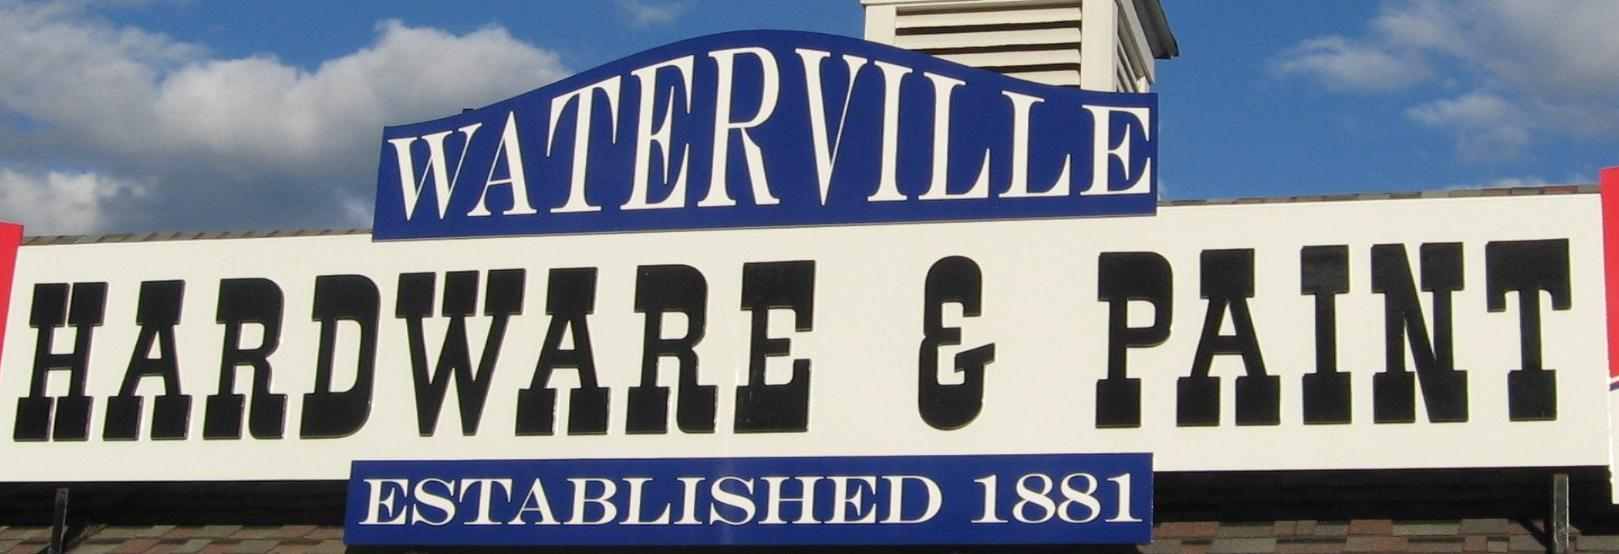 waterville hardware and paint